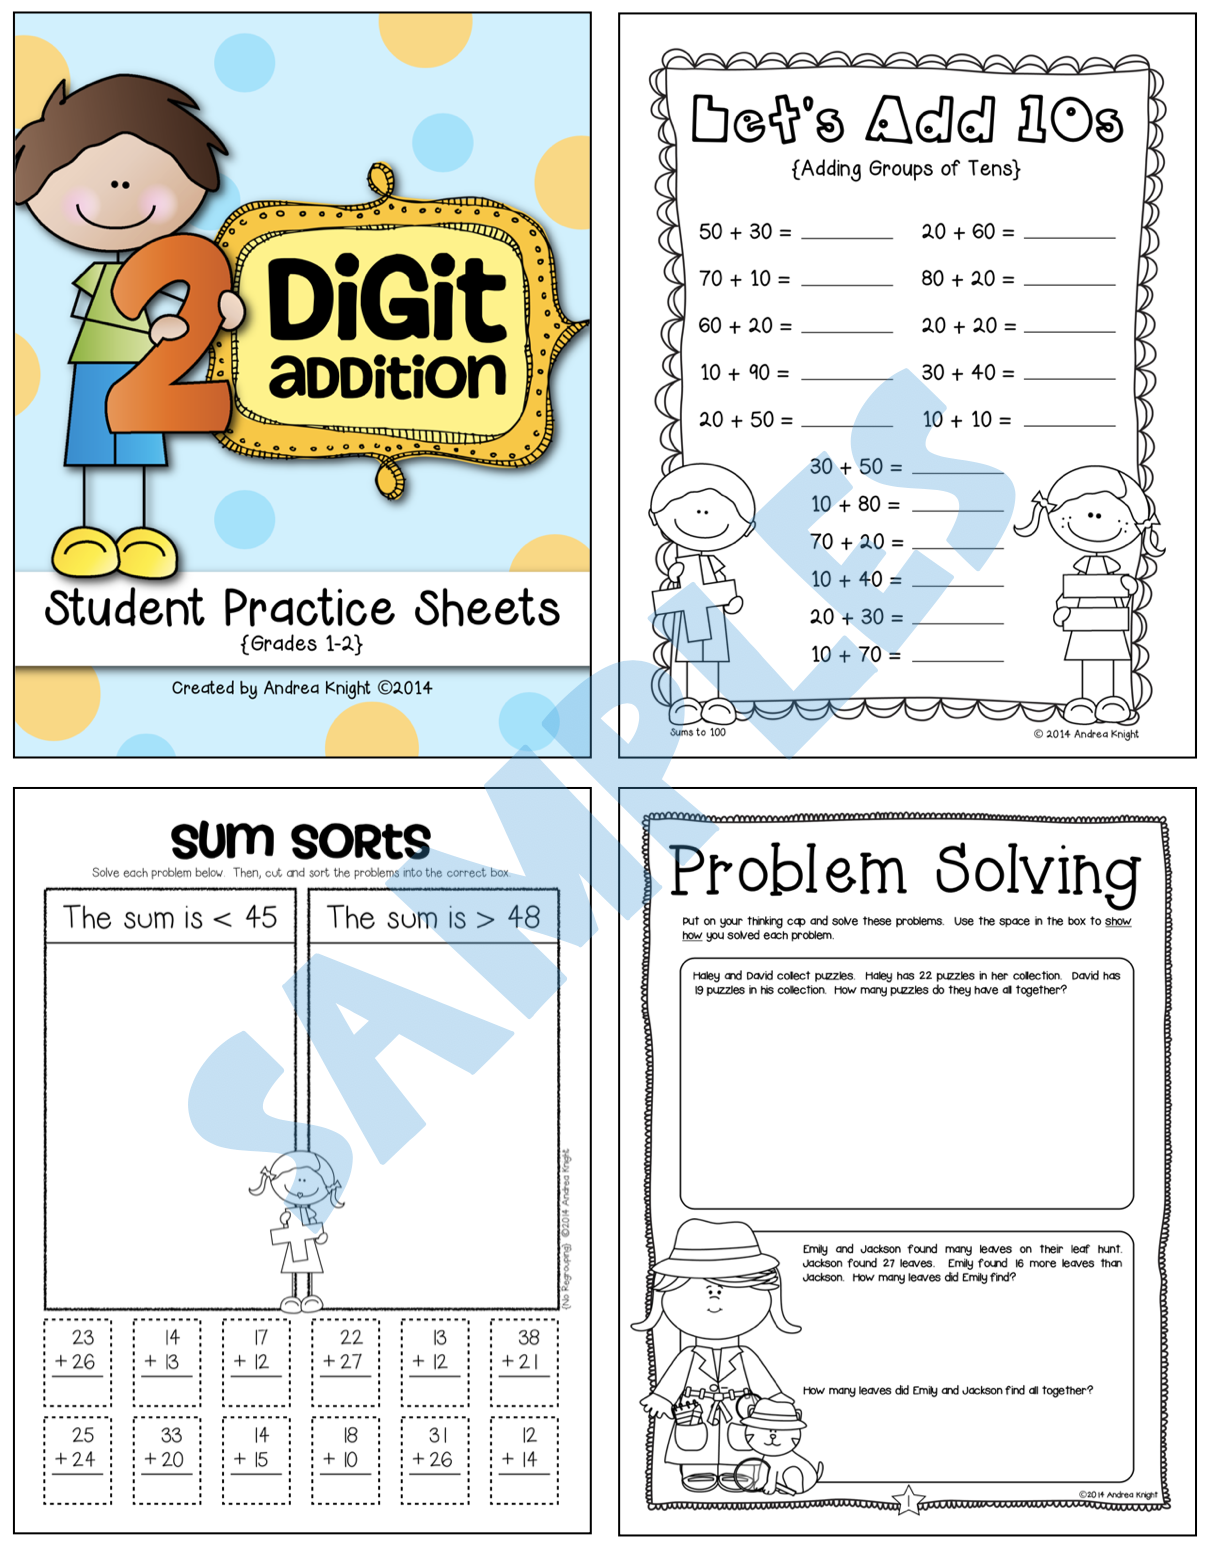 Two Digit Addition Math Practice Worksheets For Grades 1